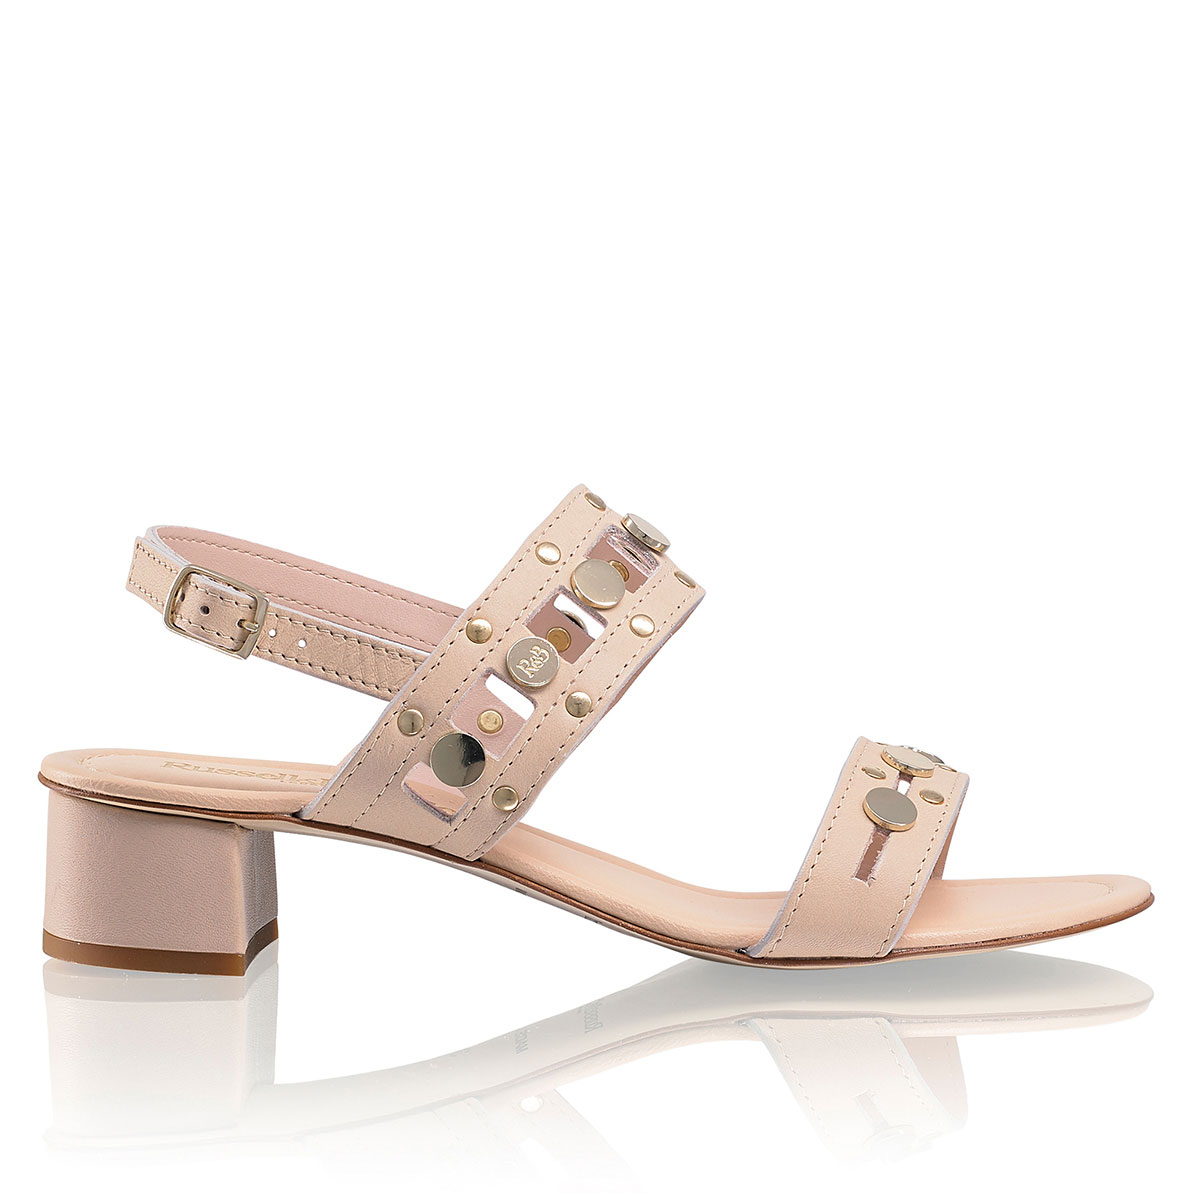 Russell And Bromley DOLLAR HI Block Heel Studded Sandal